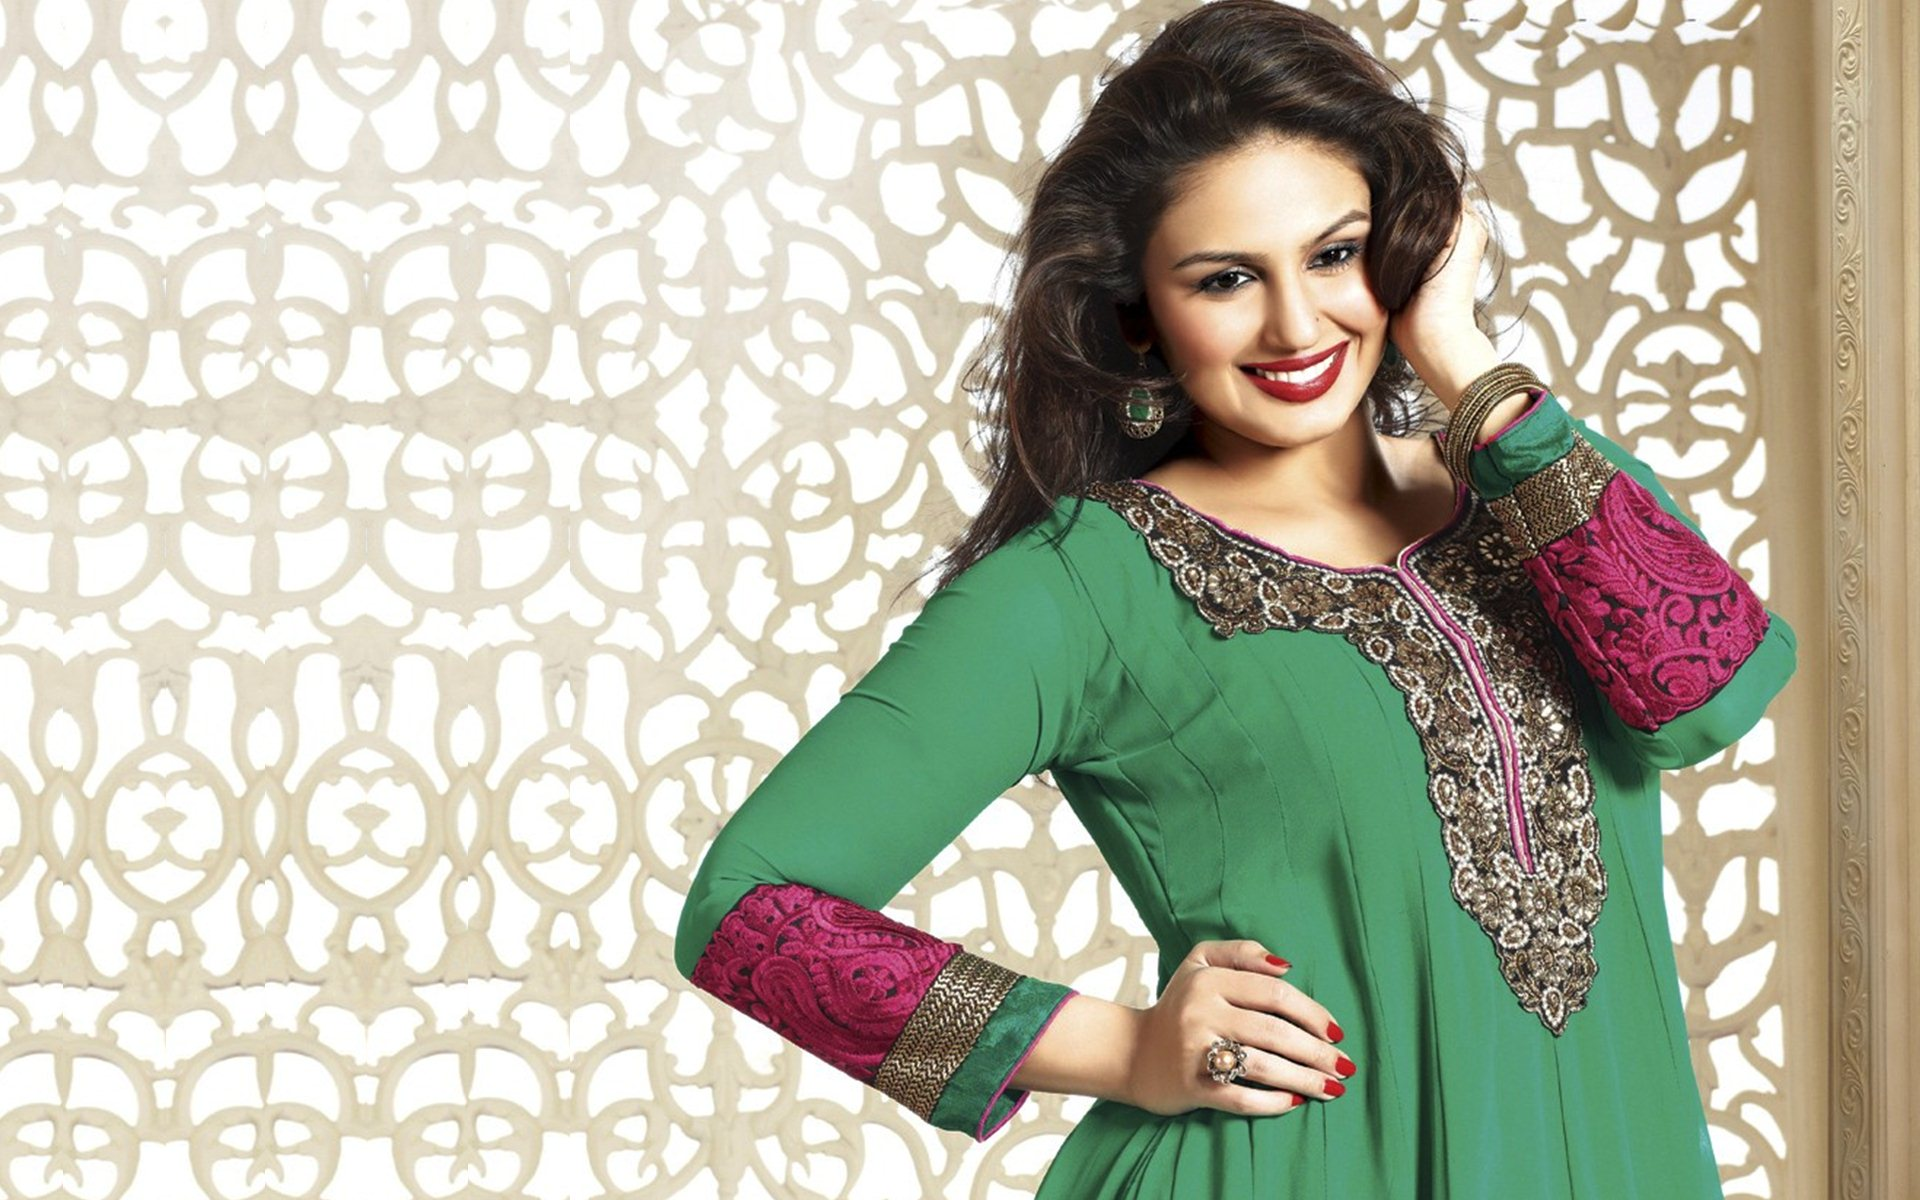 huma qureshi green dress wallpaper background